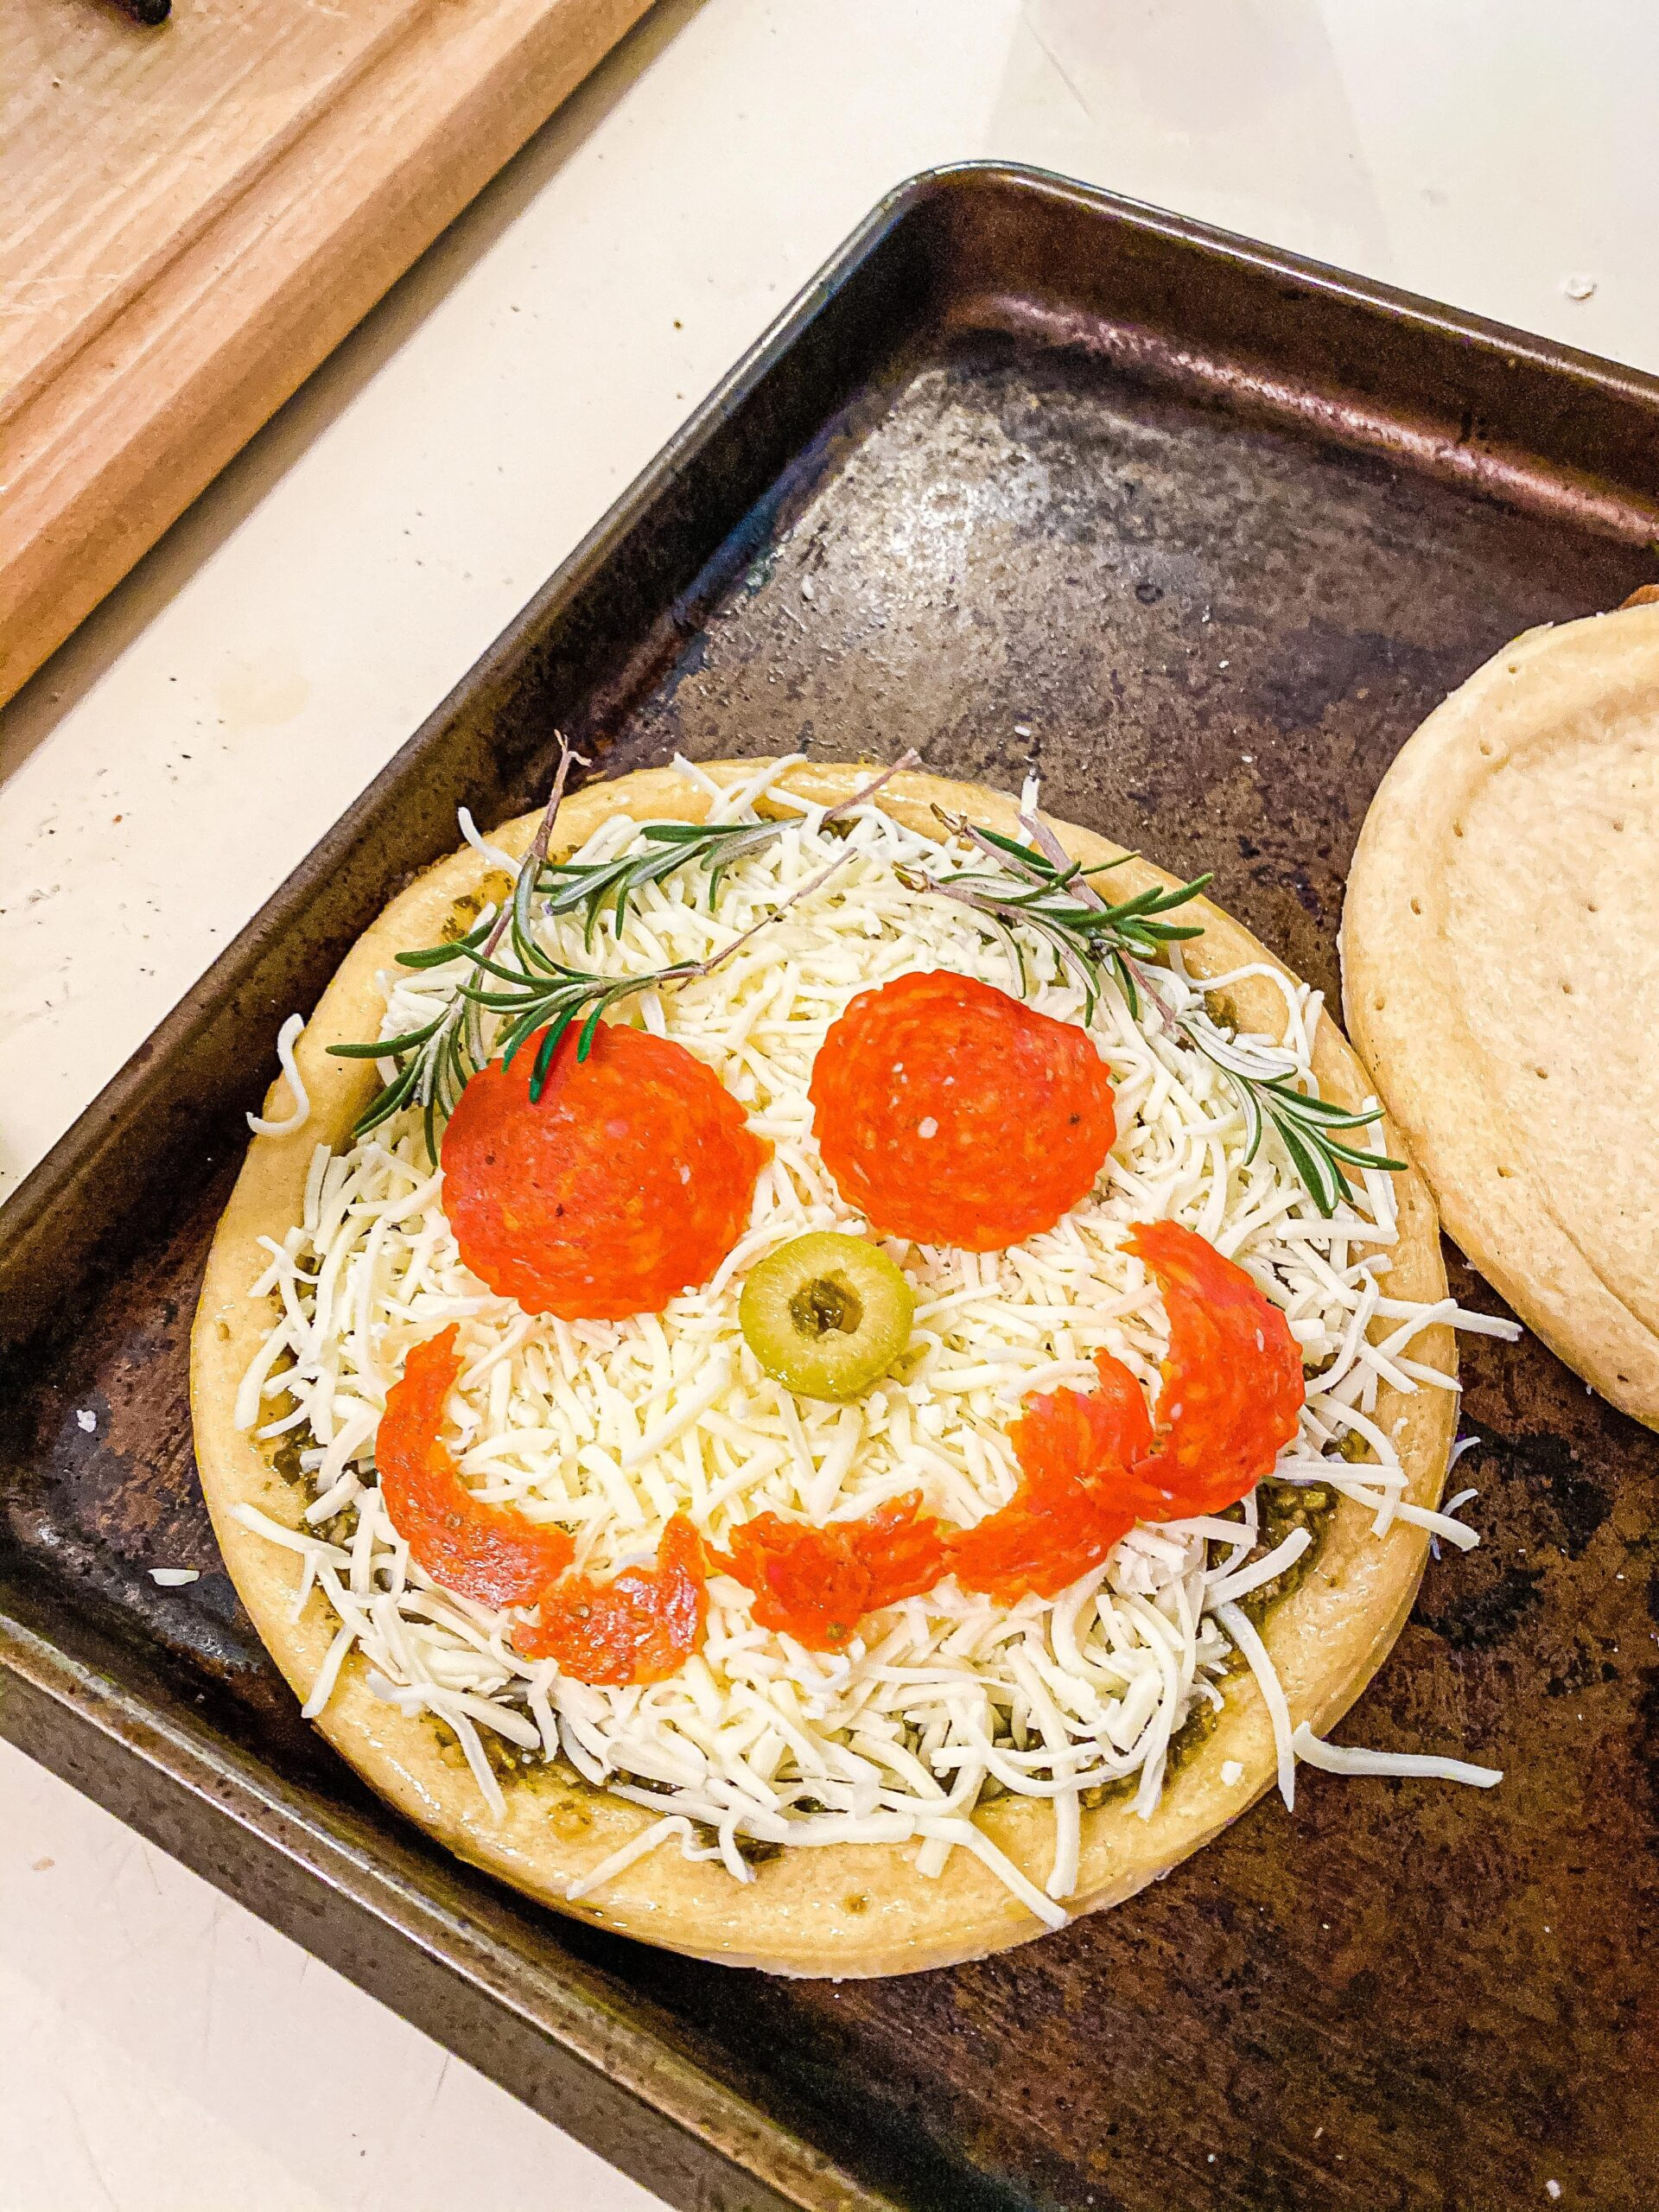 Self-Portrait All About Me Pizza Activity for Preschoolers